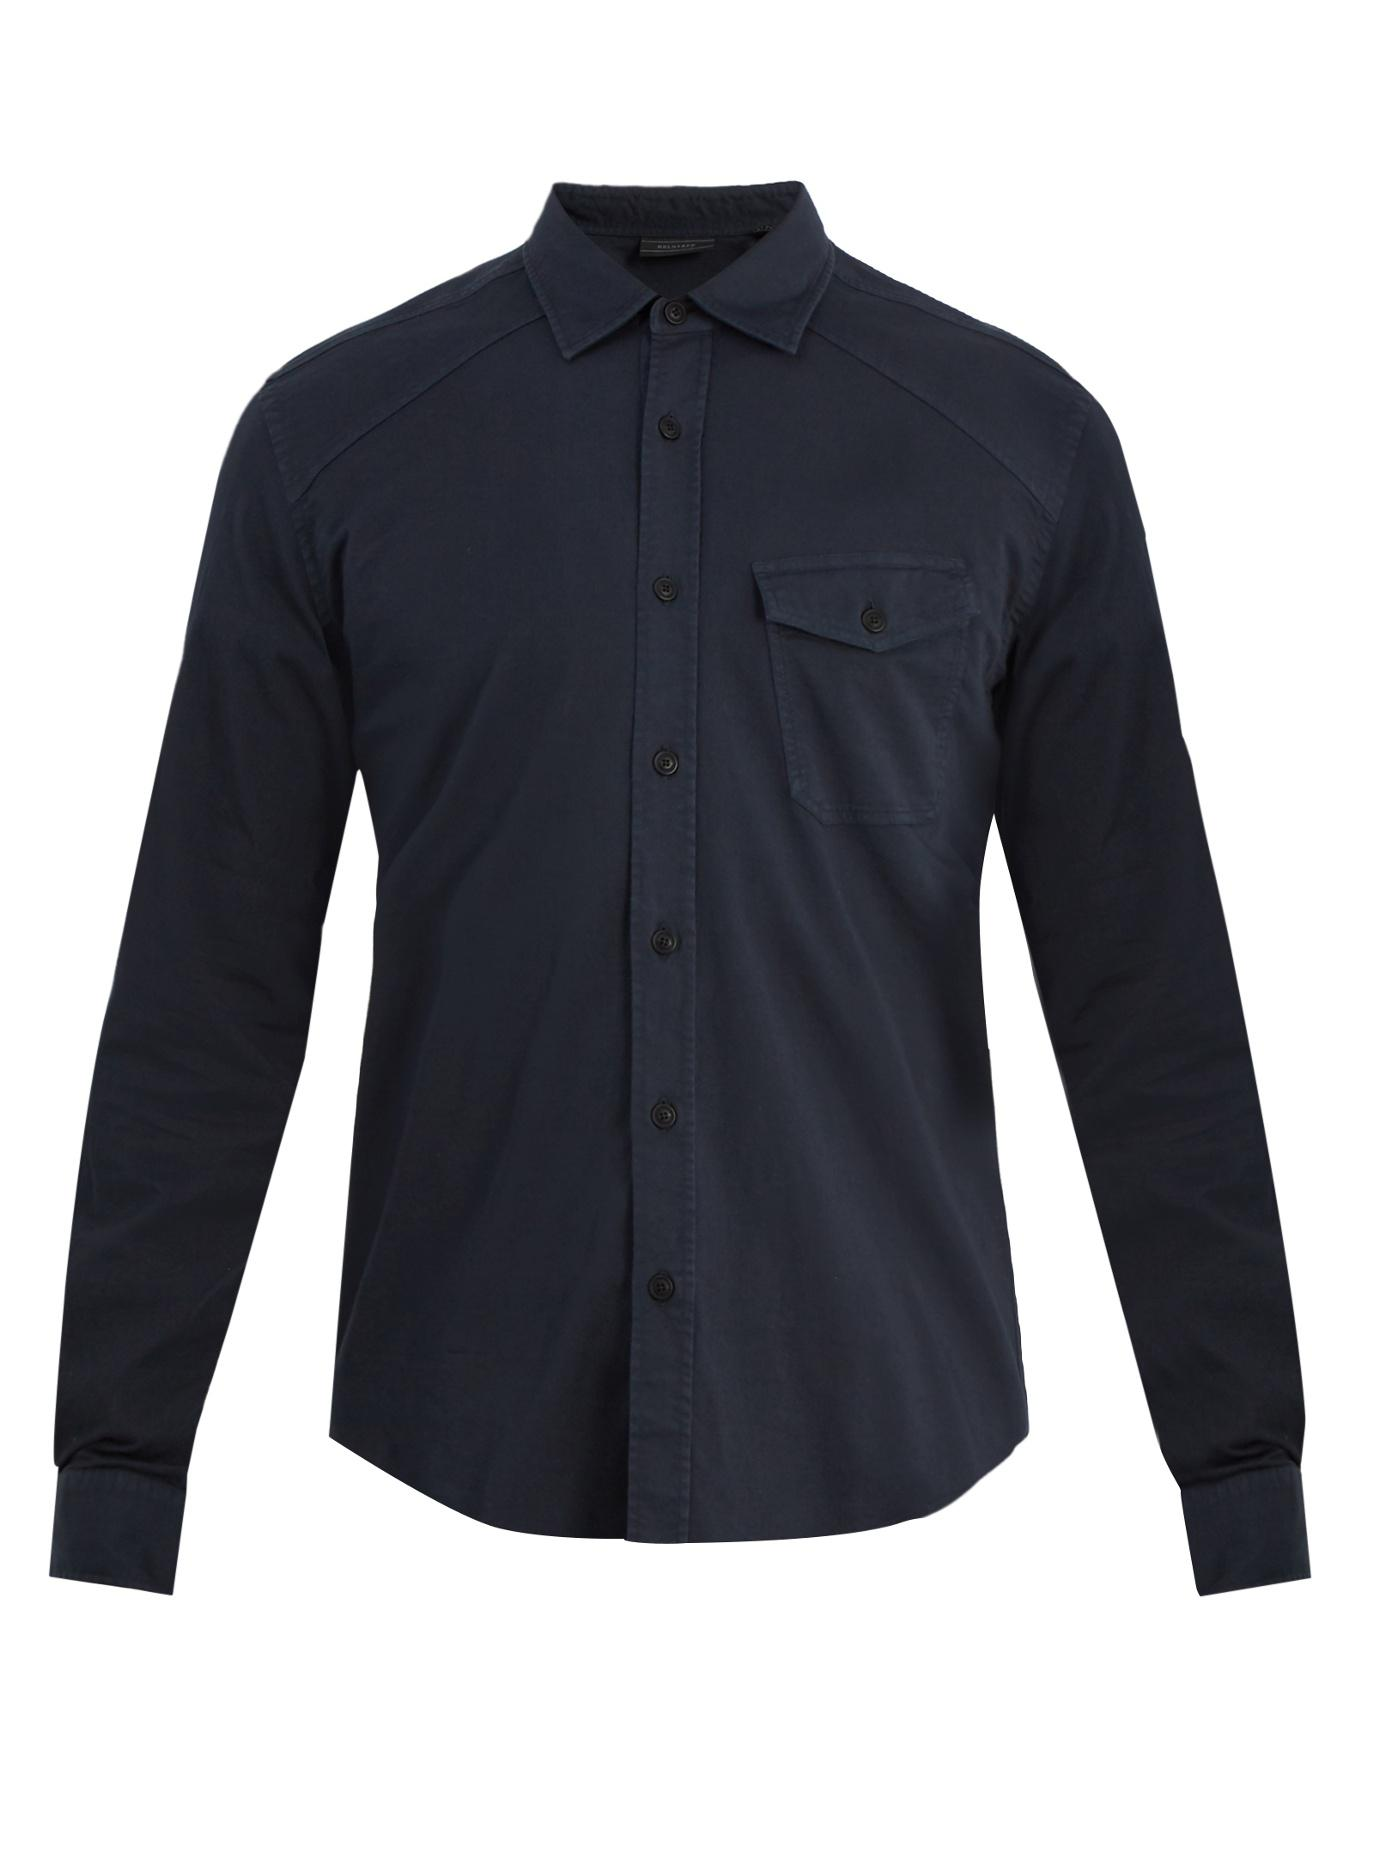 Outlet 100% Authentic Steadway Stretch-cotton Shirt Belstaff Largest Supplier Online How Much lvPBsR9